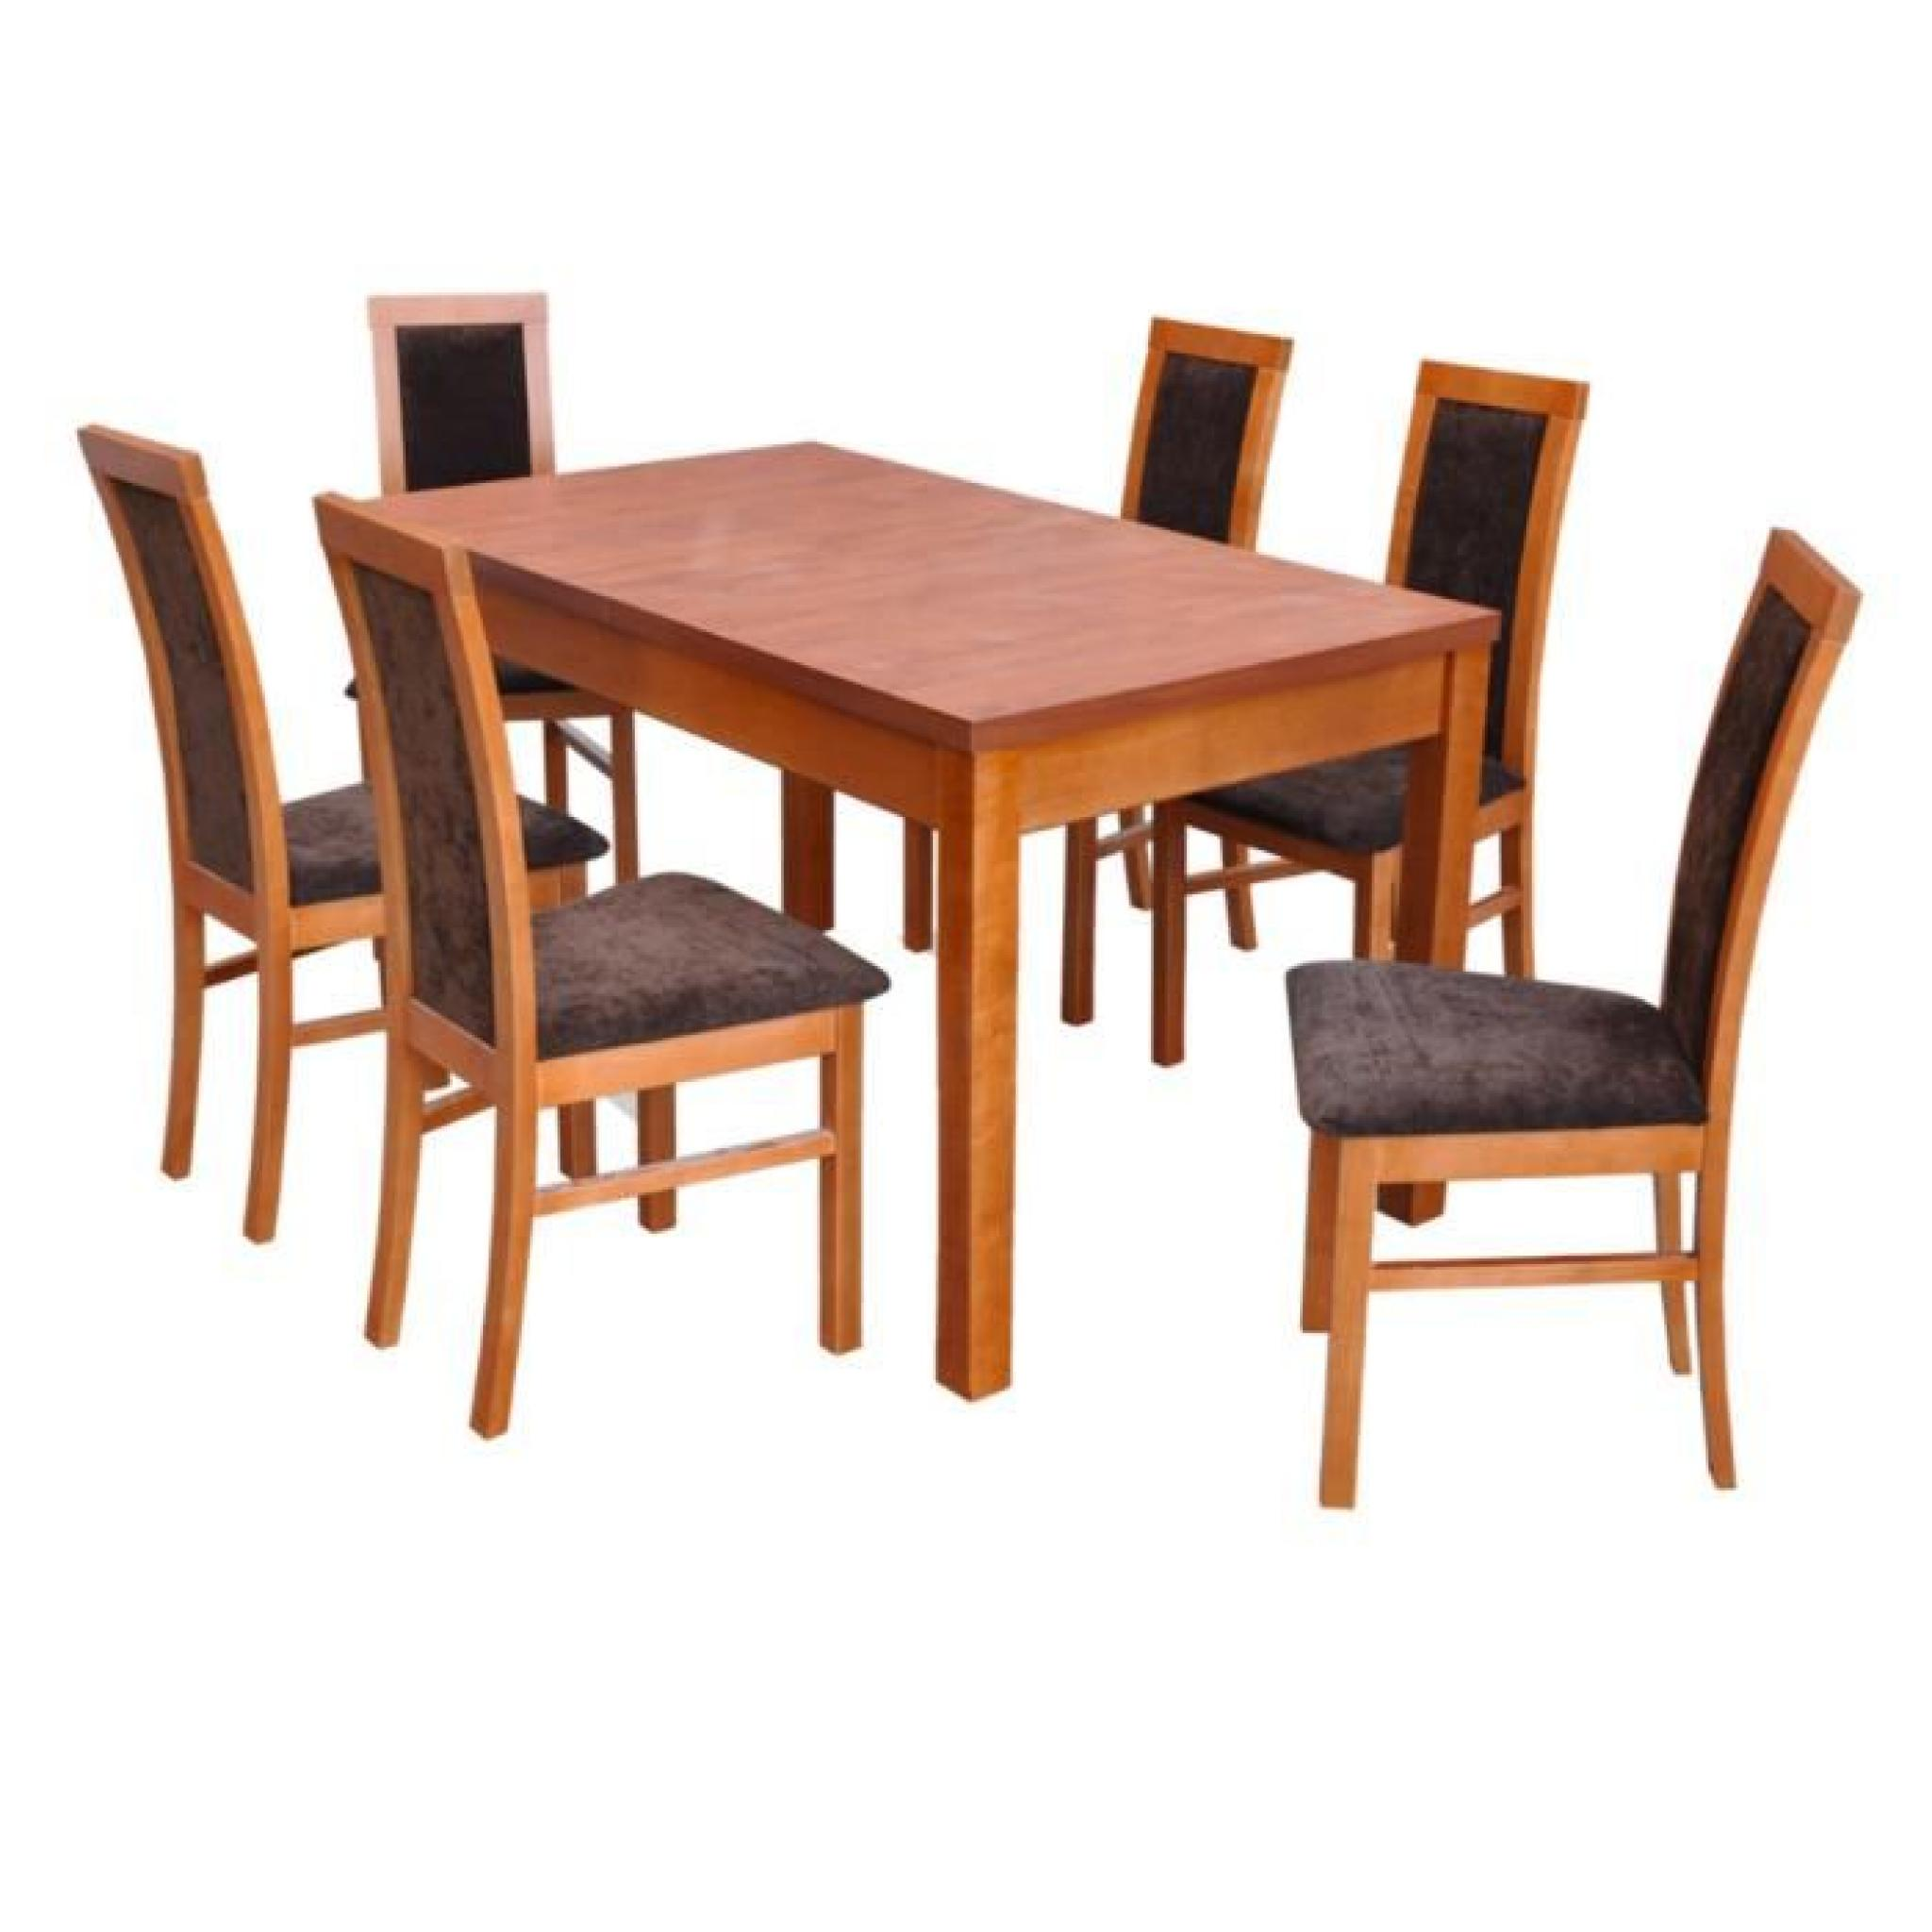 Ensemble table extensible et 6 chaises tablewood estrella - Ensemble table et chaise salle a manger ...